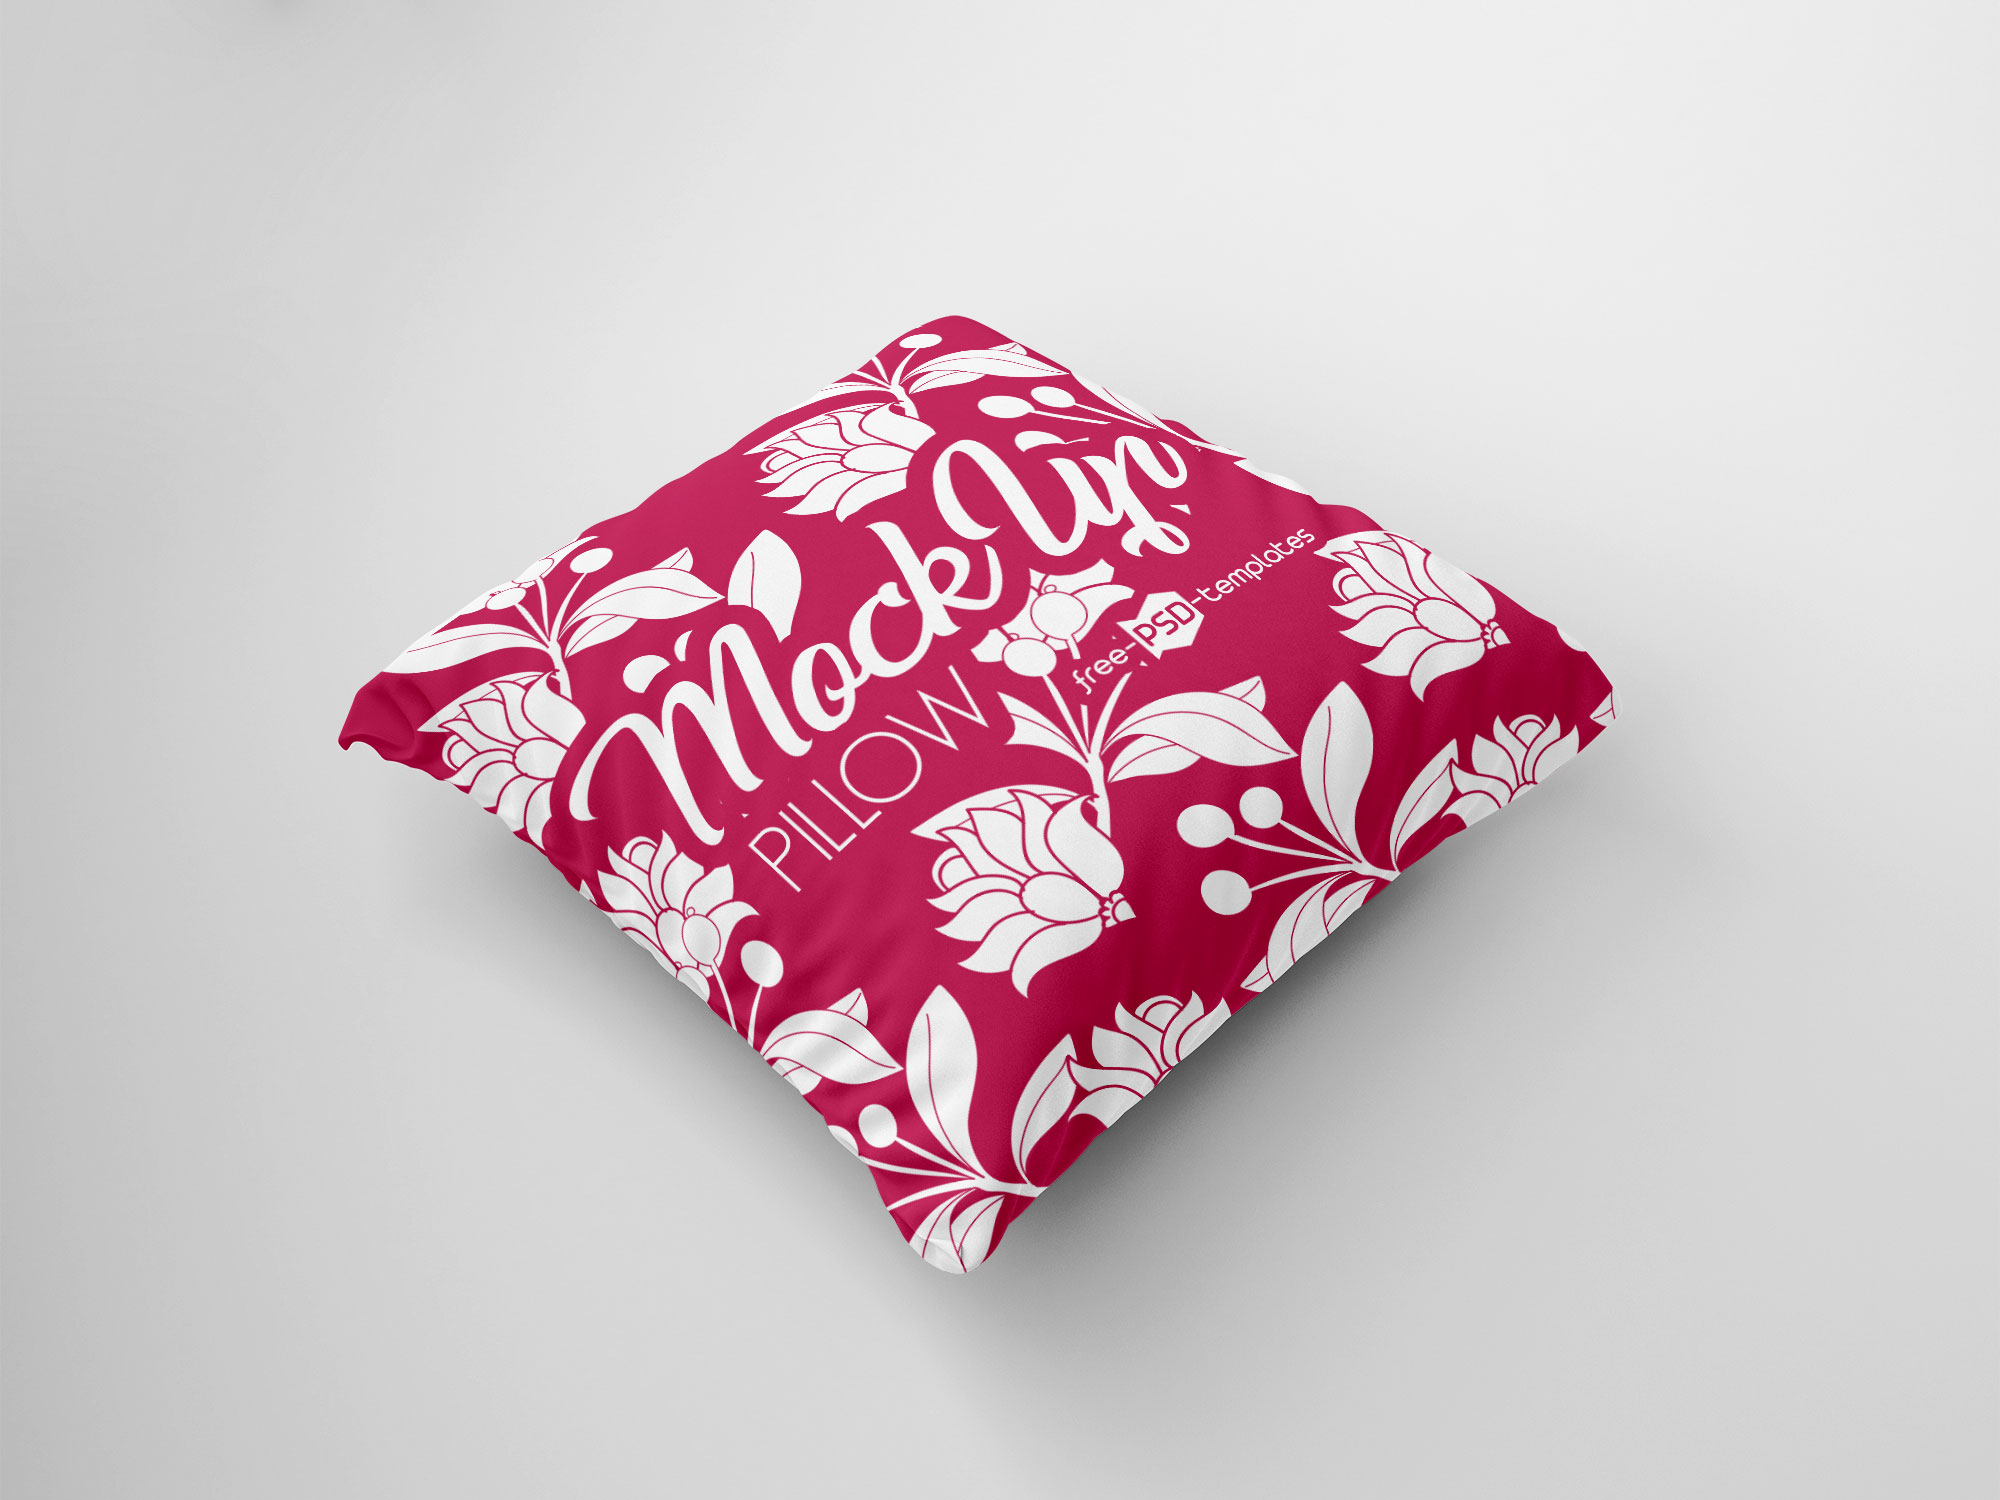 Perspective Pillow Mockup